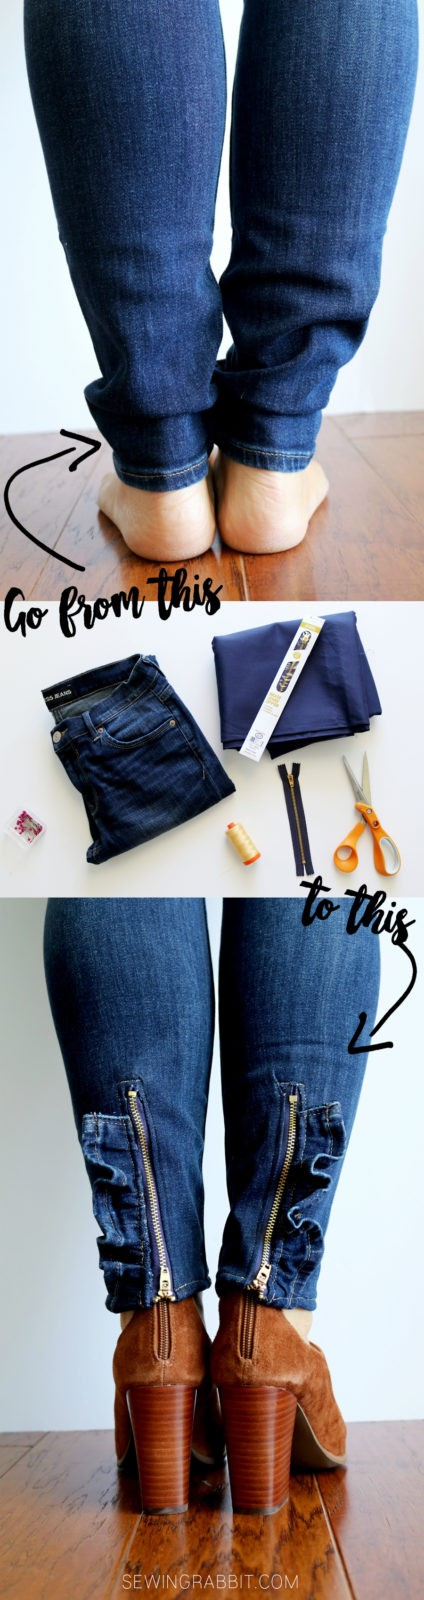 MAKE THESE: ruffled zipper jeans DIY